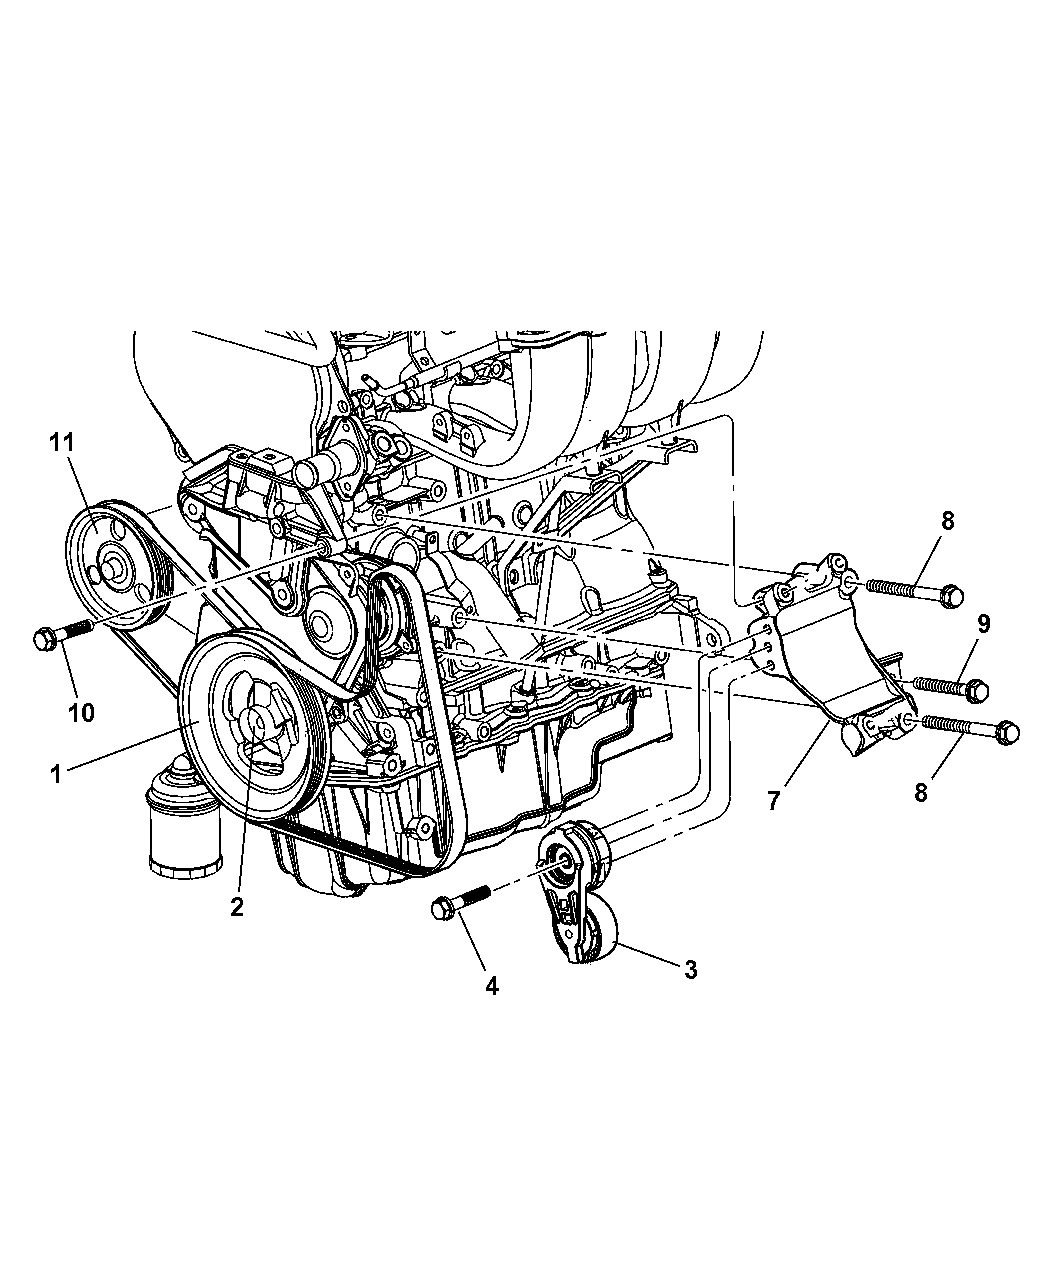 2004 Dodge Grand Caravan Pulley Related Parts Engine Schematics Thumbnail 1